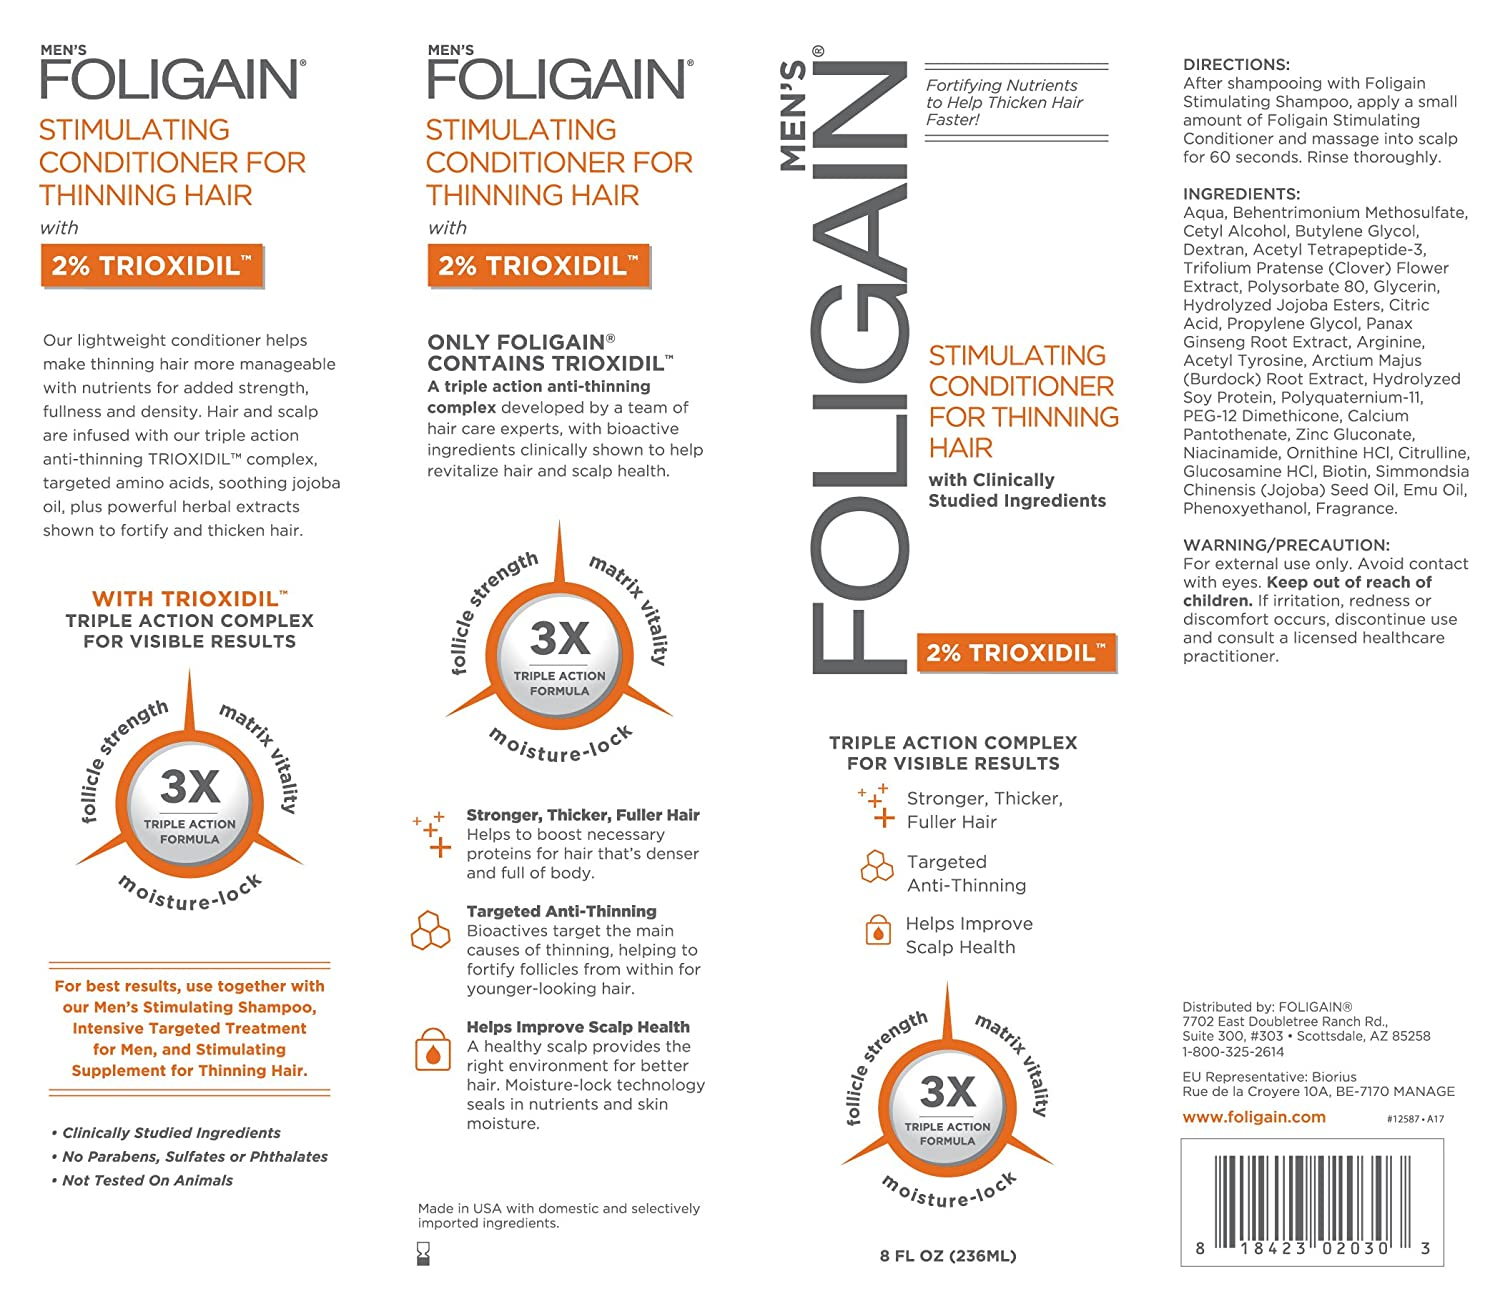 Foligain Triple Action Conditioner For Thinning Hair For Men with 2% Trioxidil   Hair Stimulating Conditioner   Men's Volumizing Conditioner (8oz): Beauty